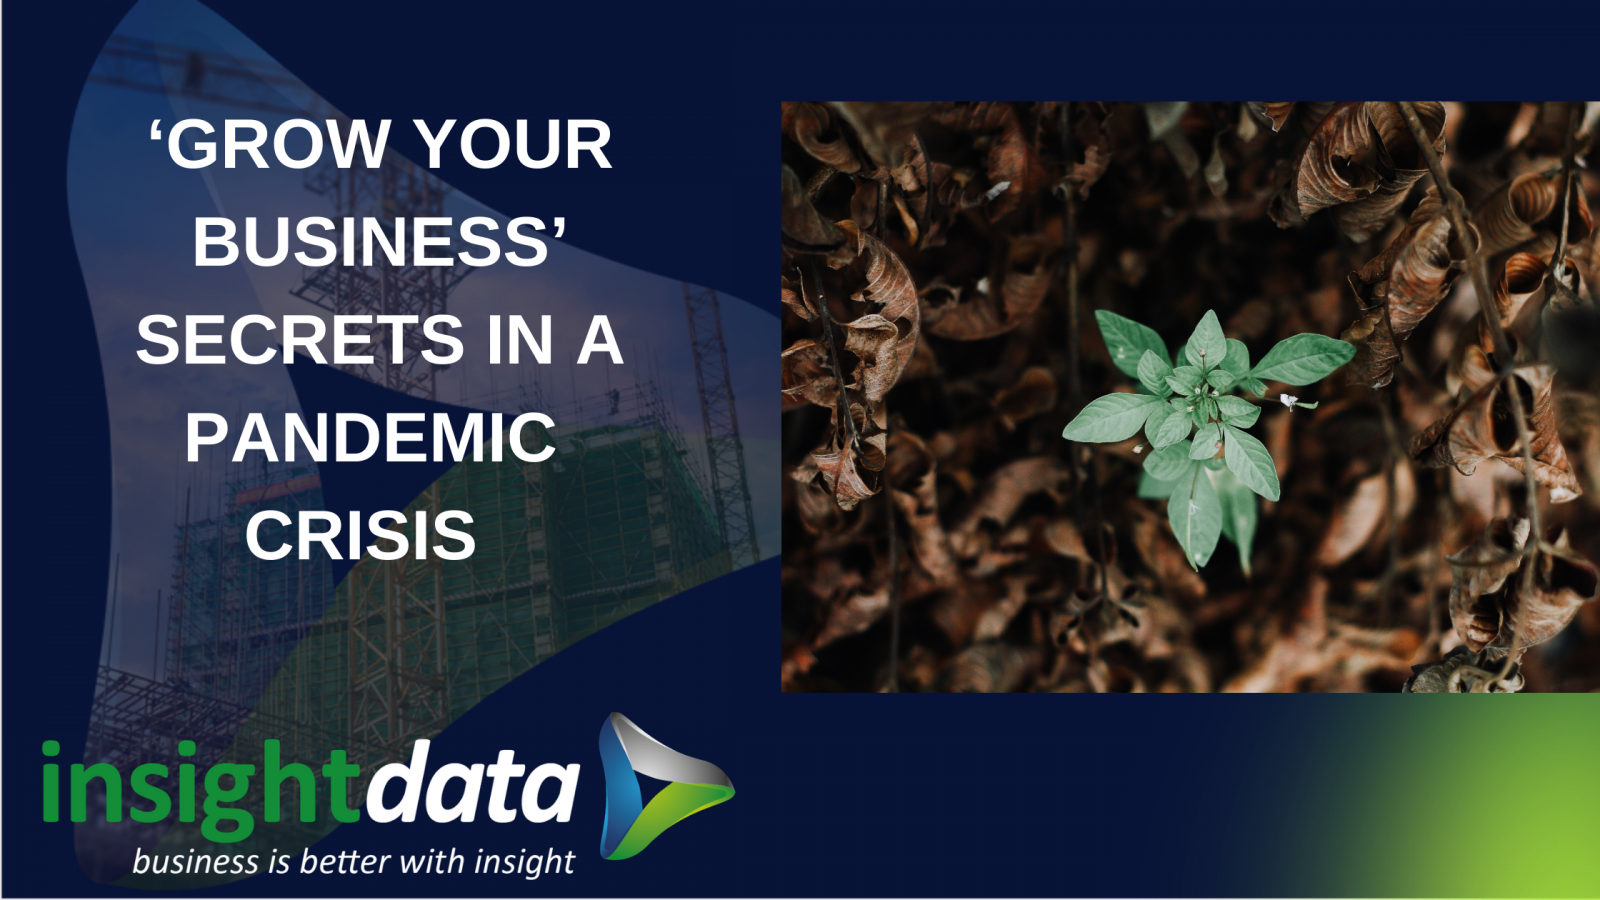 'GROW YOUR BUSINESS' SECRETS IN A PANDEMIC CRISIS article representing Insight Data